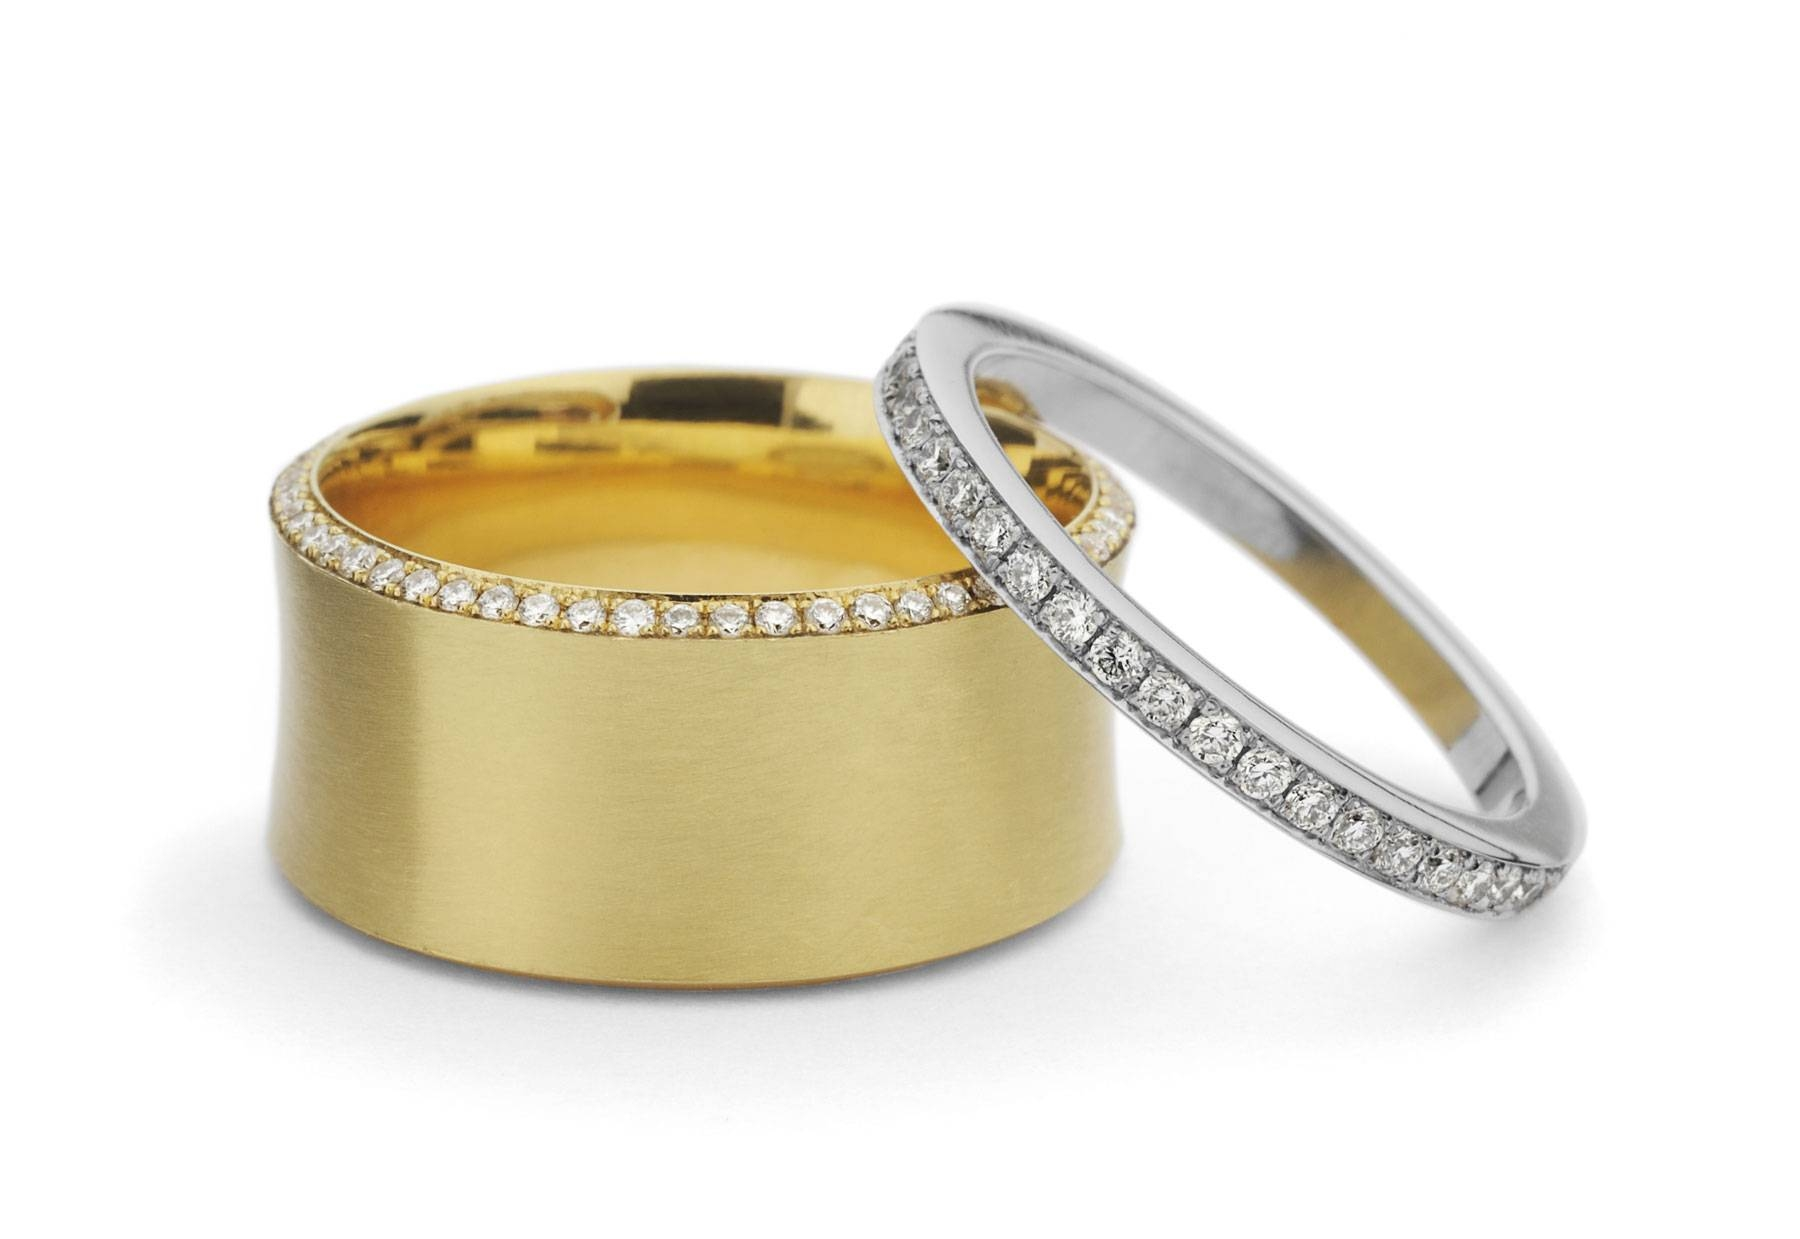 18 Carat Yellow Gold & Platinum Wedding And Eternity Bands Within 18 Karat Gold Wedding Rings (View 6 of 15)